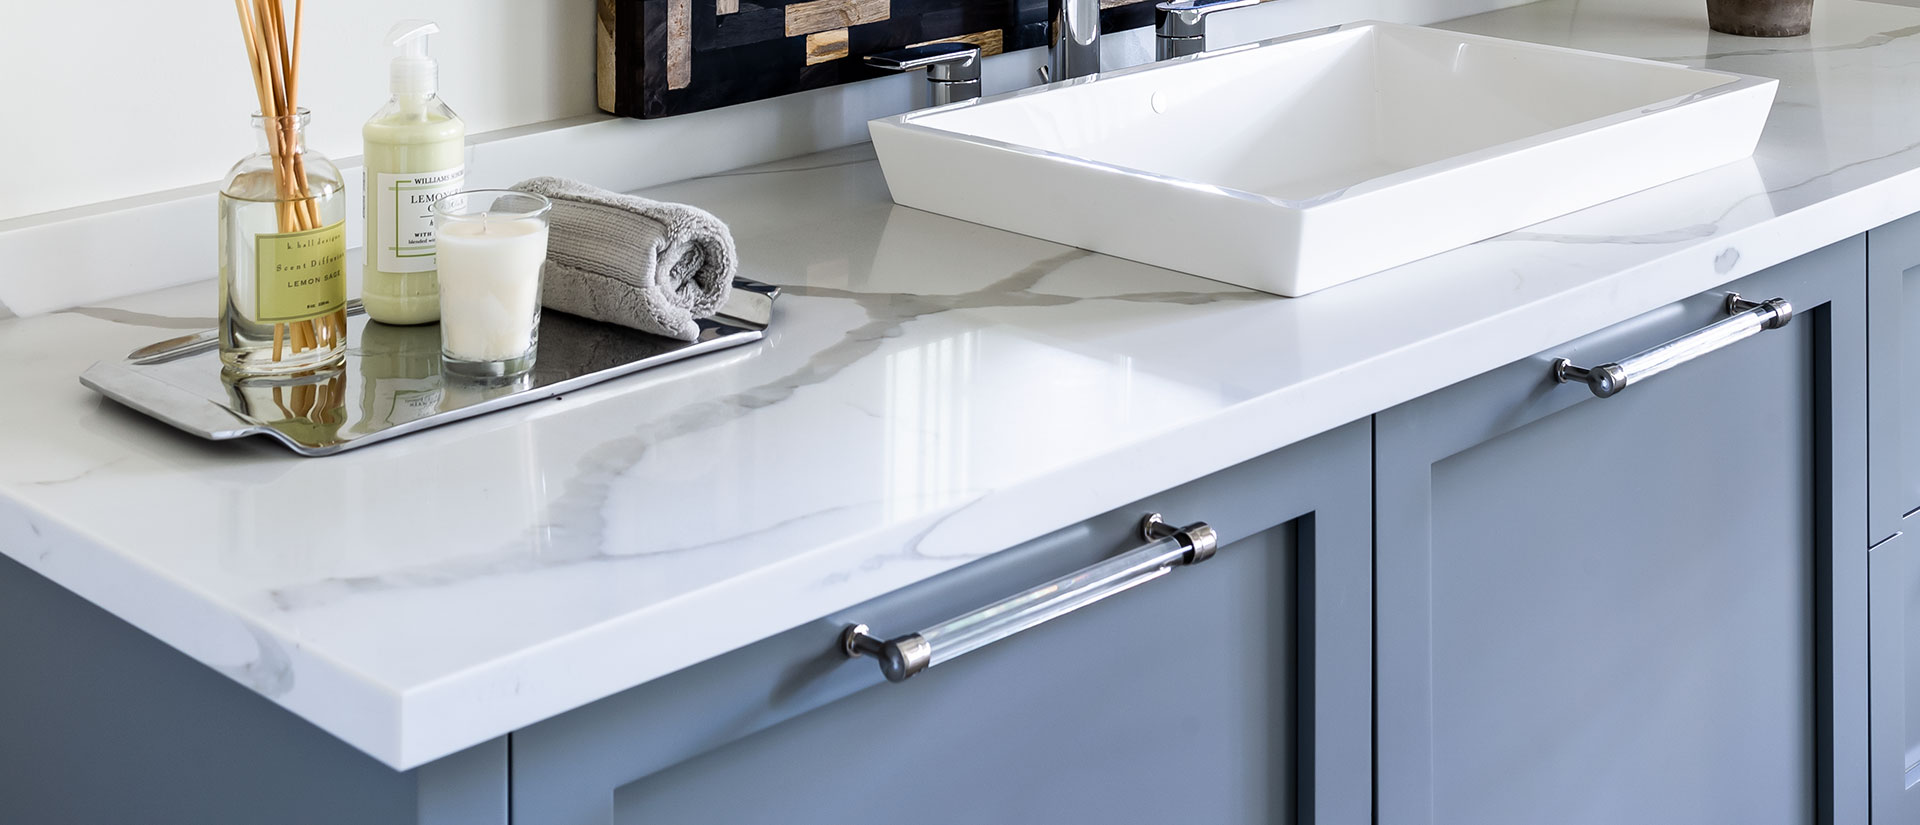 Quartz Countertops Calacatta Classique White Quartz Q Premium Natural Quartz